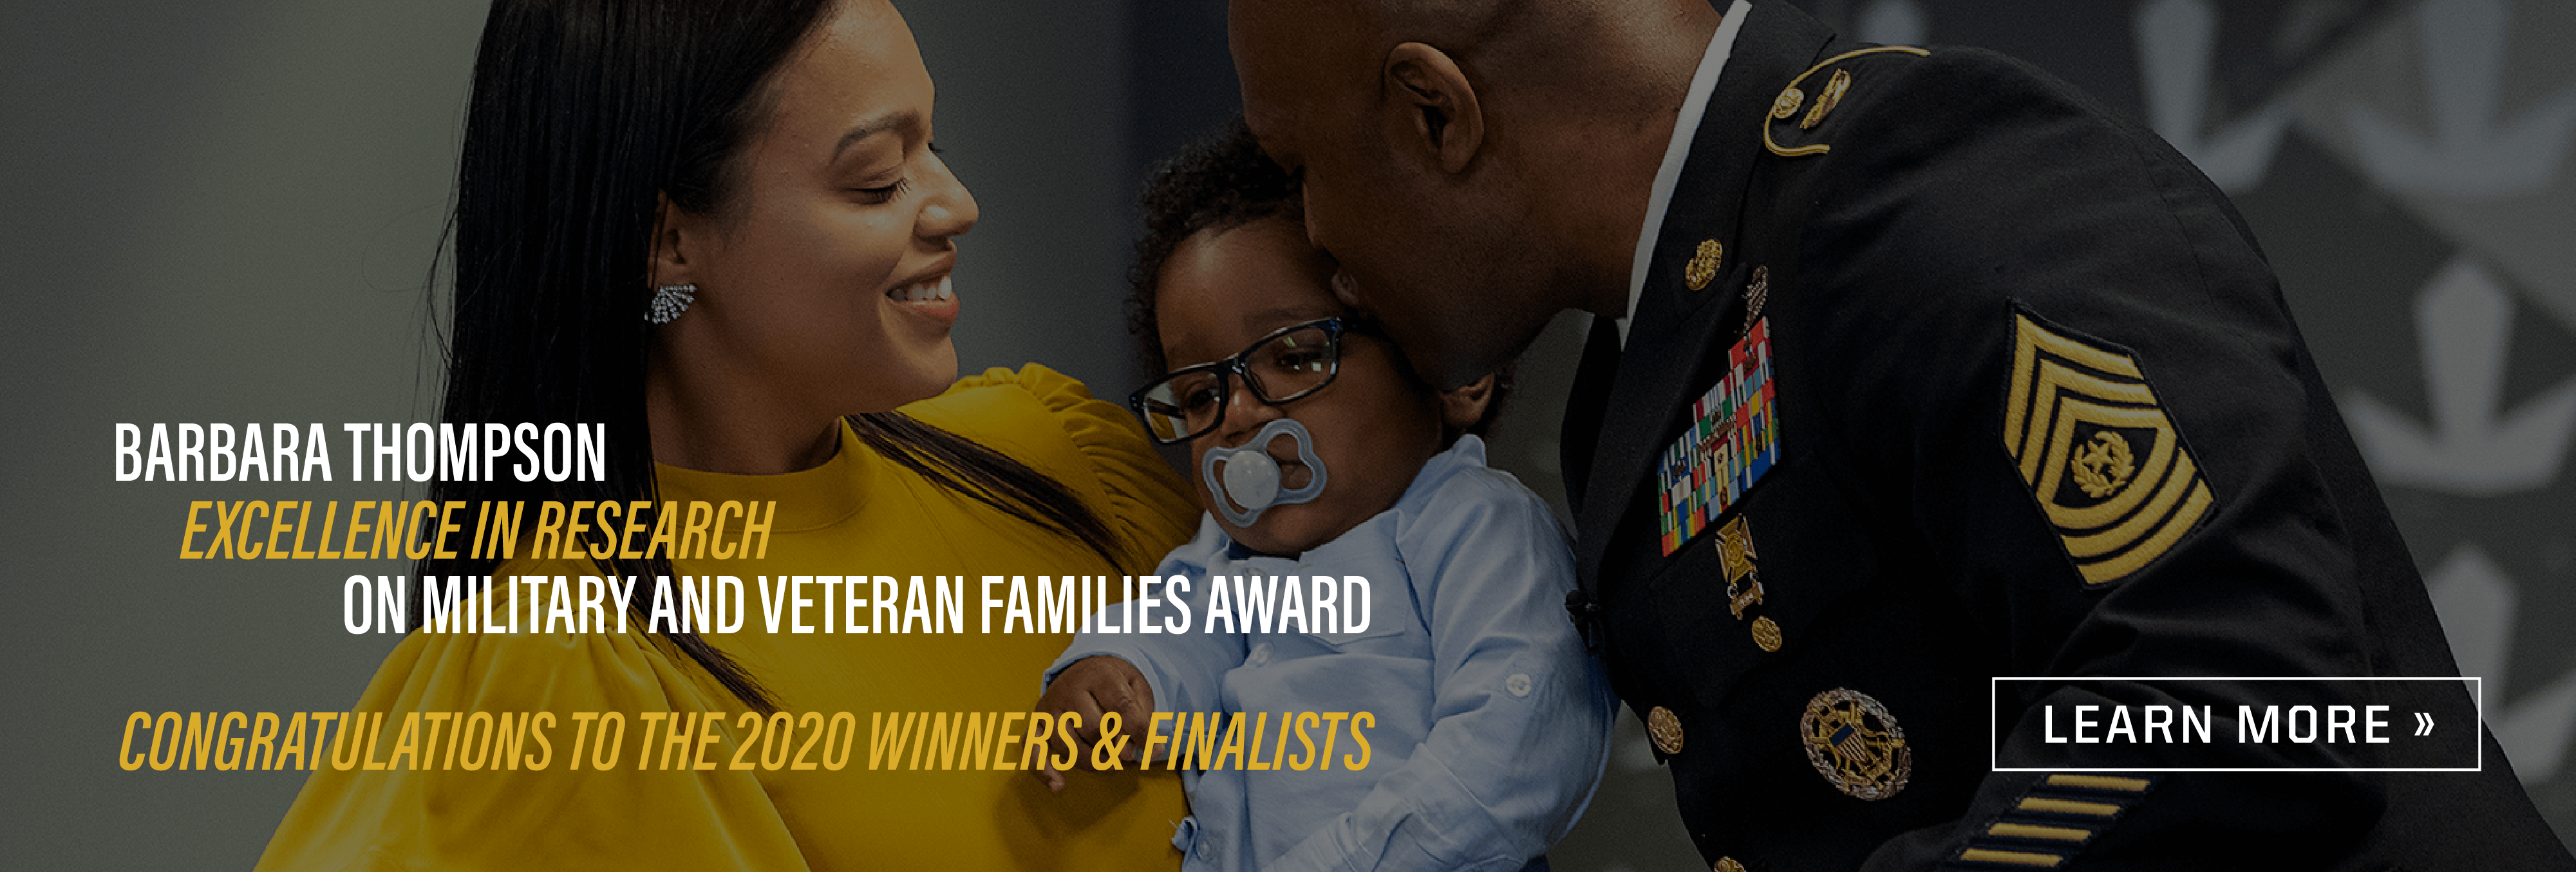 Text: Barbara Thompson Excellence in Research on Military and Veteran Families Award Congratulations to the 2020 winners and finalists. Learn more. Image: Army soldier wearing dress uniform kissing his baby who his wife is holding